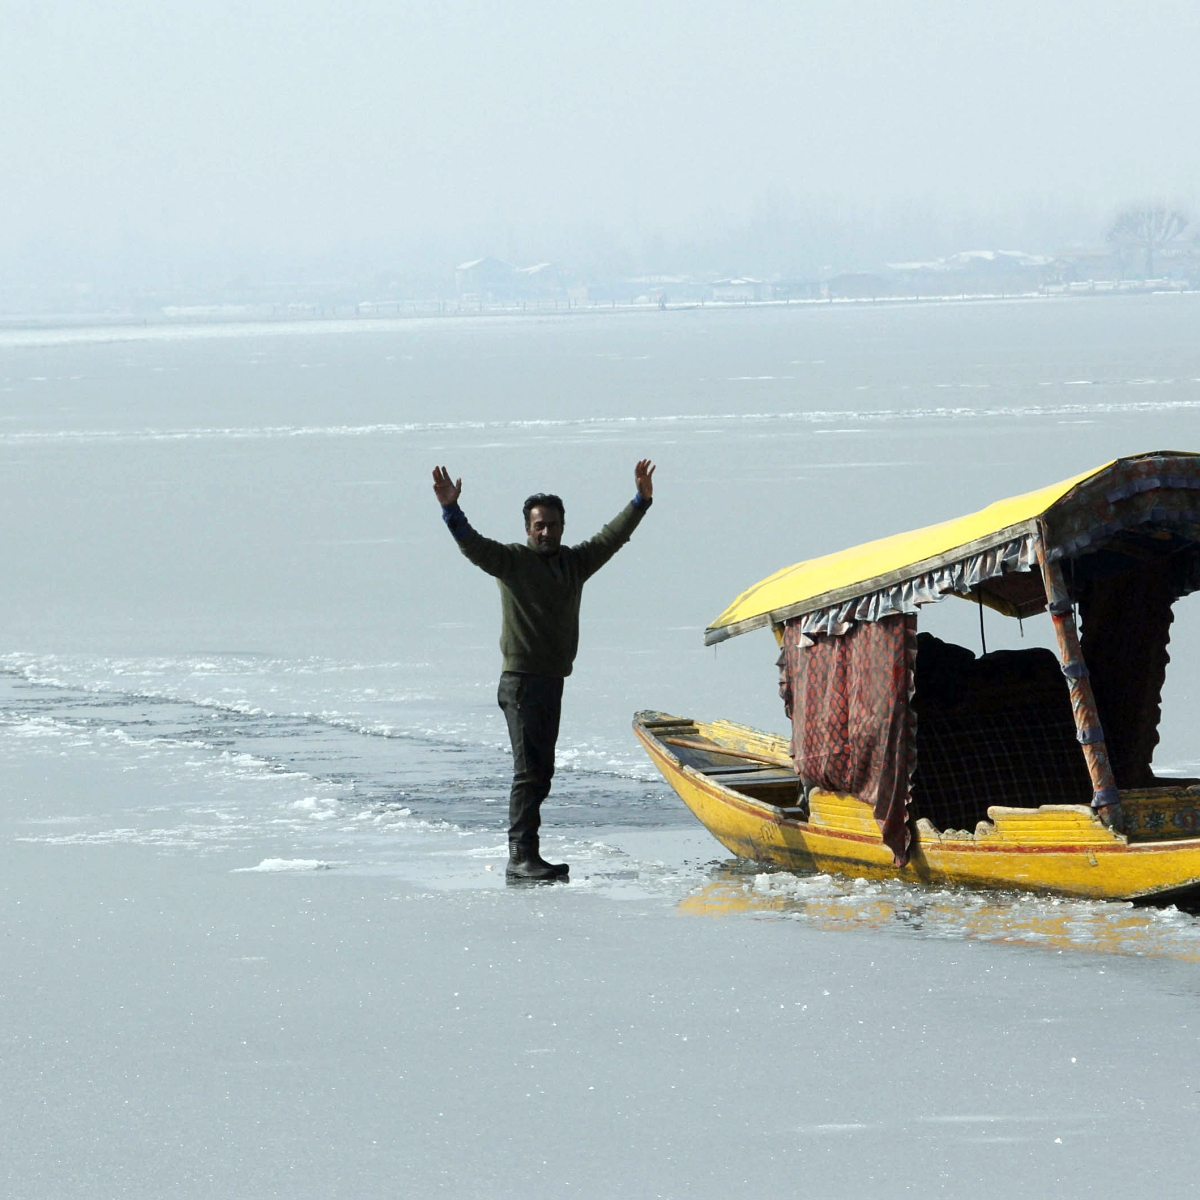 At minus 8.4 degrees, Srinagar records lowest temperature in 30 years